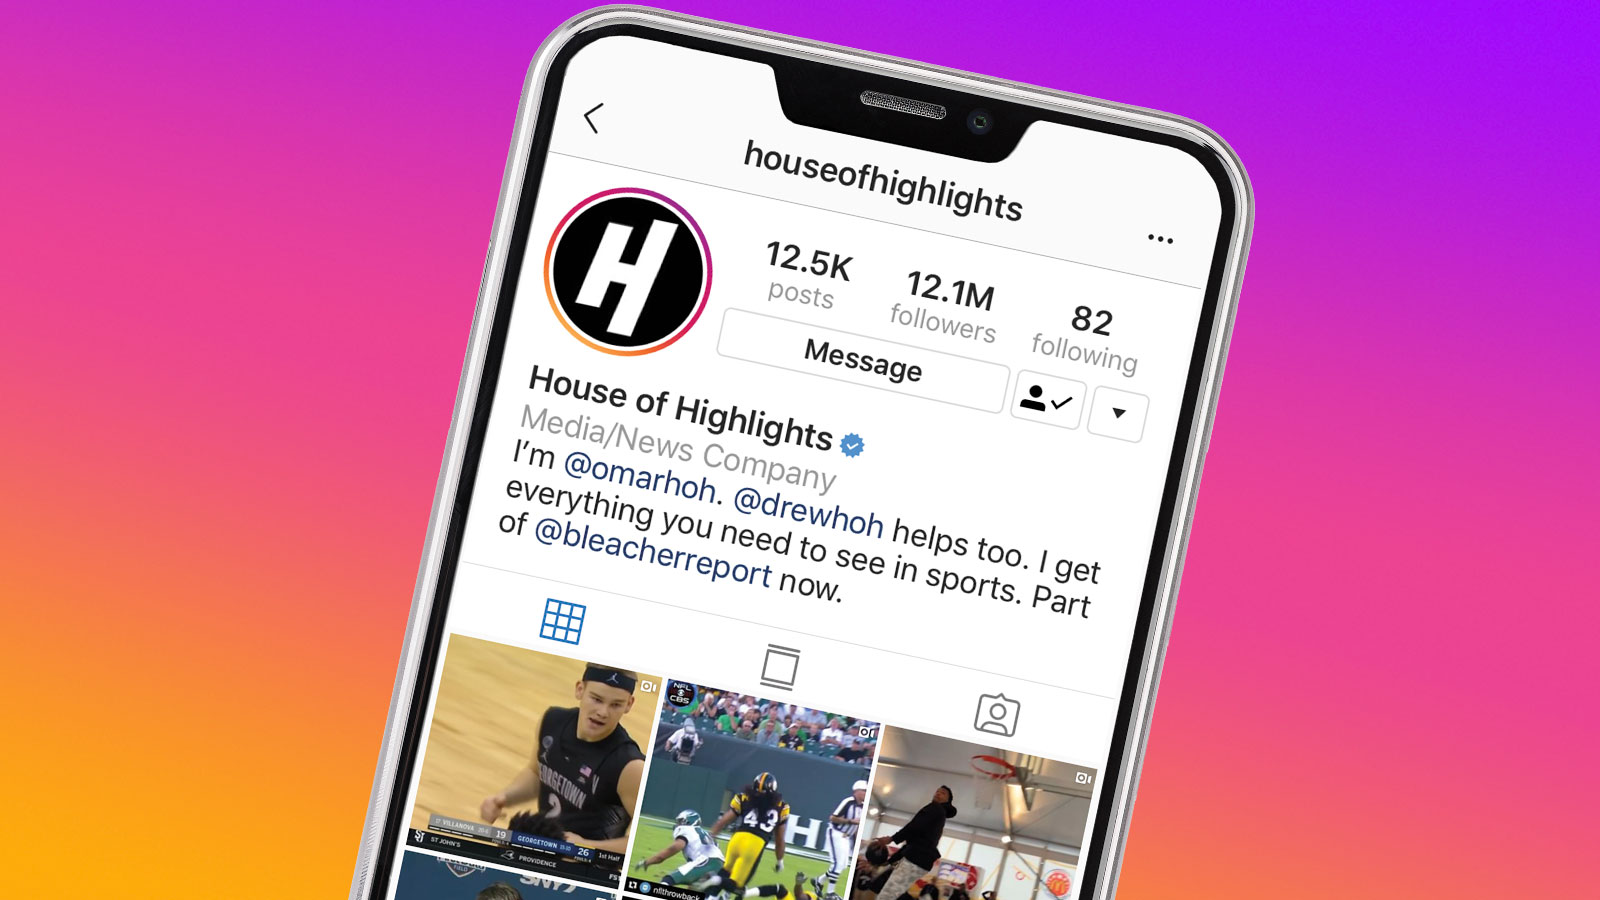 House of Highlights